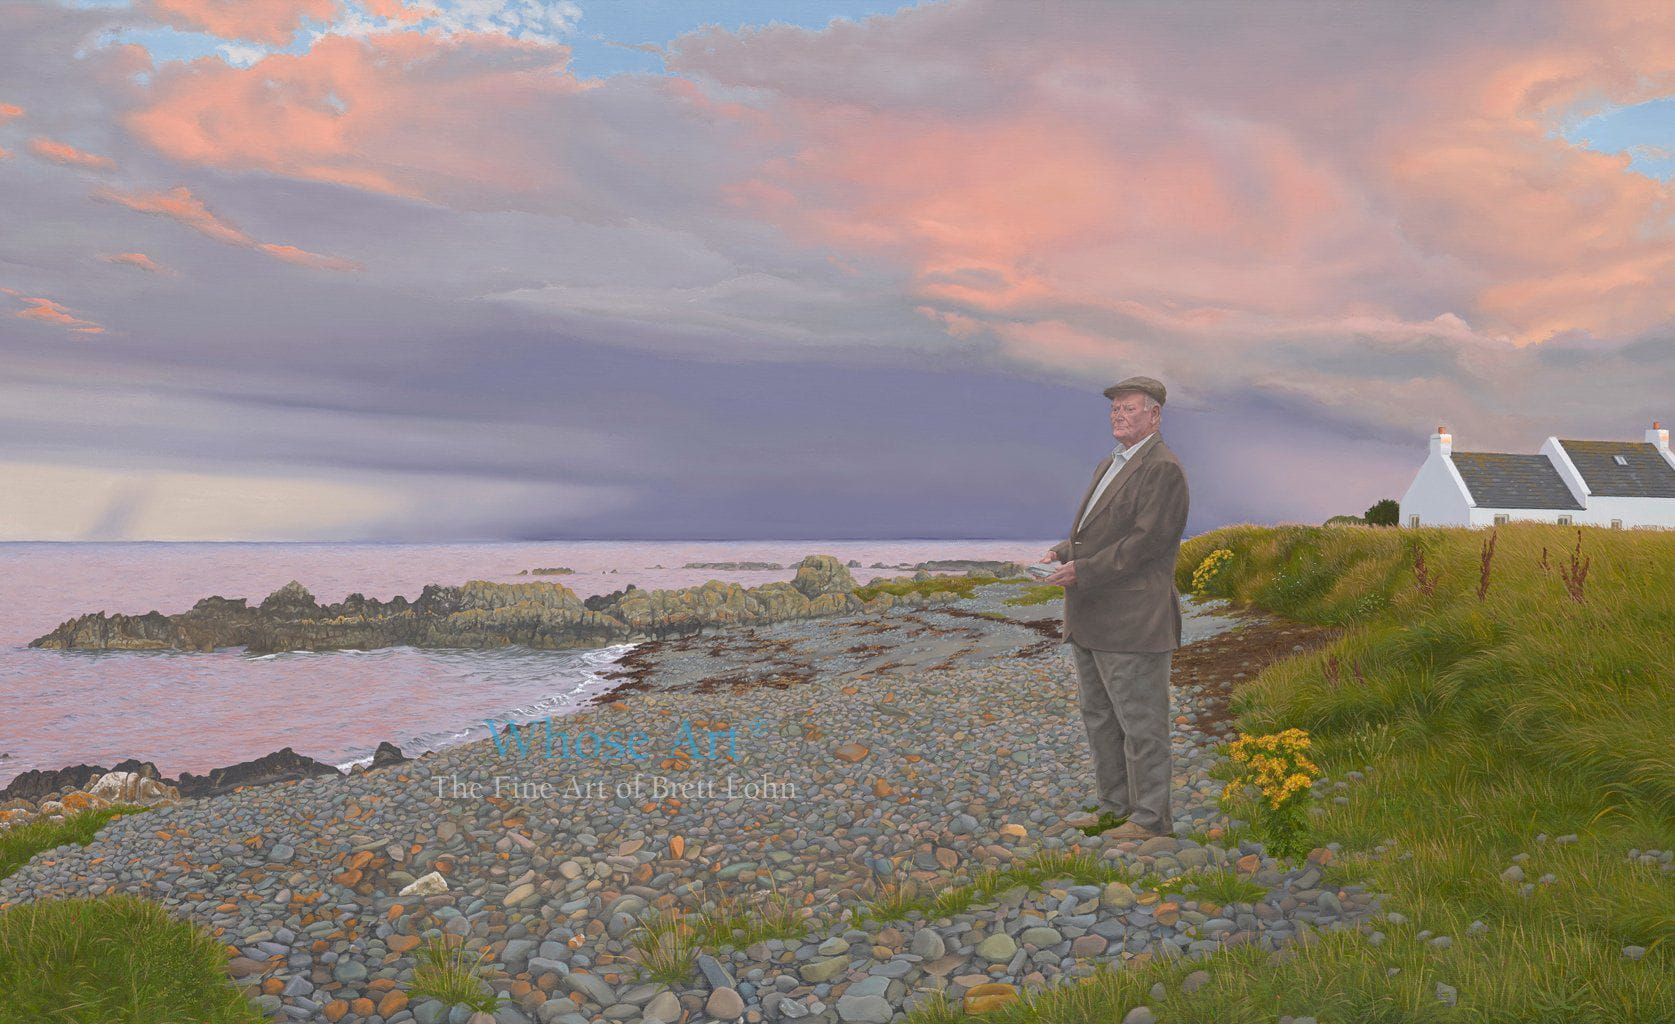 Mystic wall art oil painting of a man holding a heavy stone, stood on a stoney beach beneath a stormy sunset, by the sea.